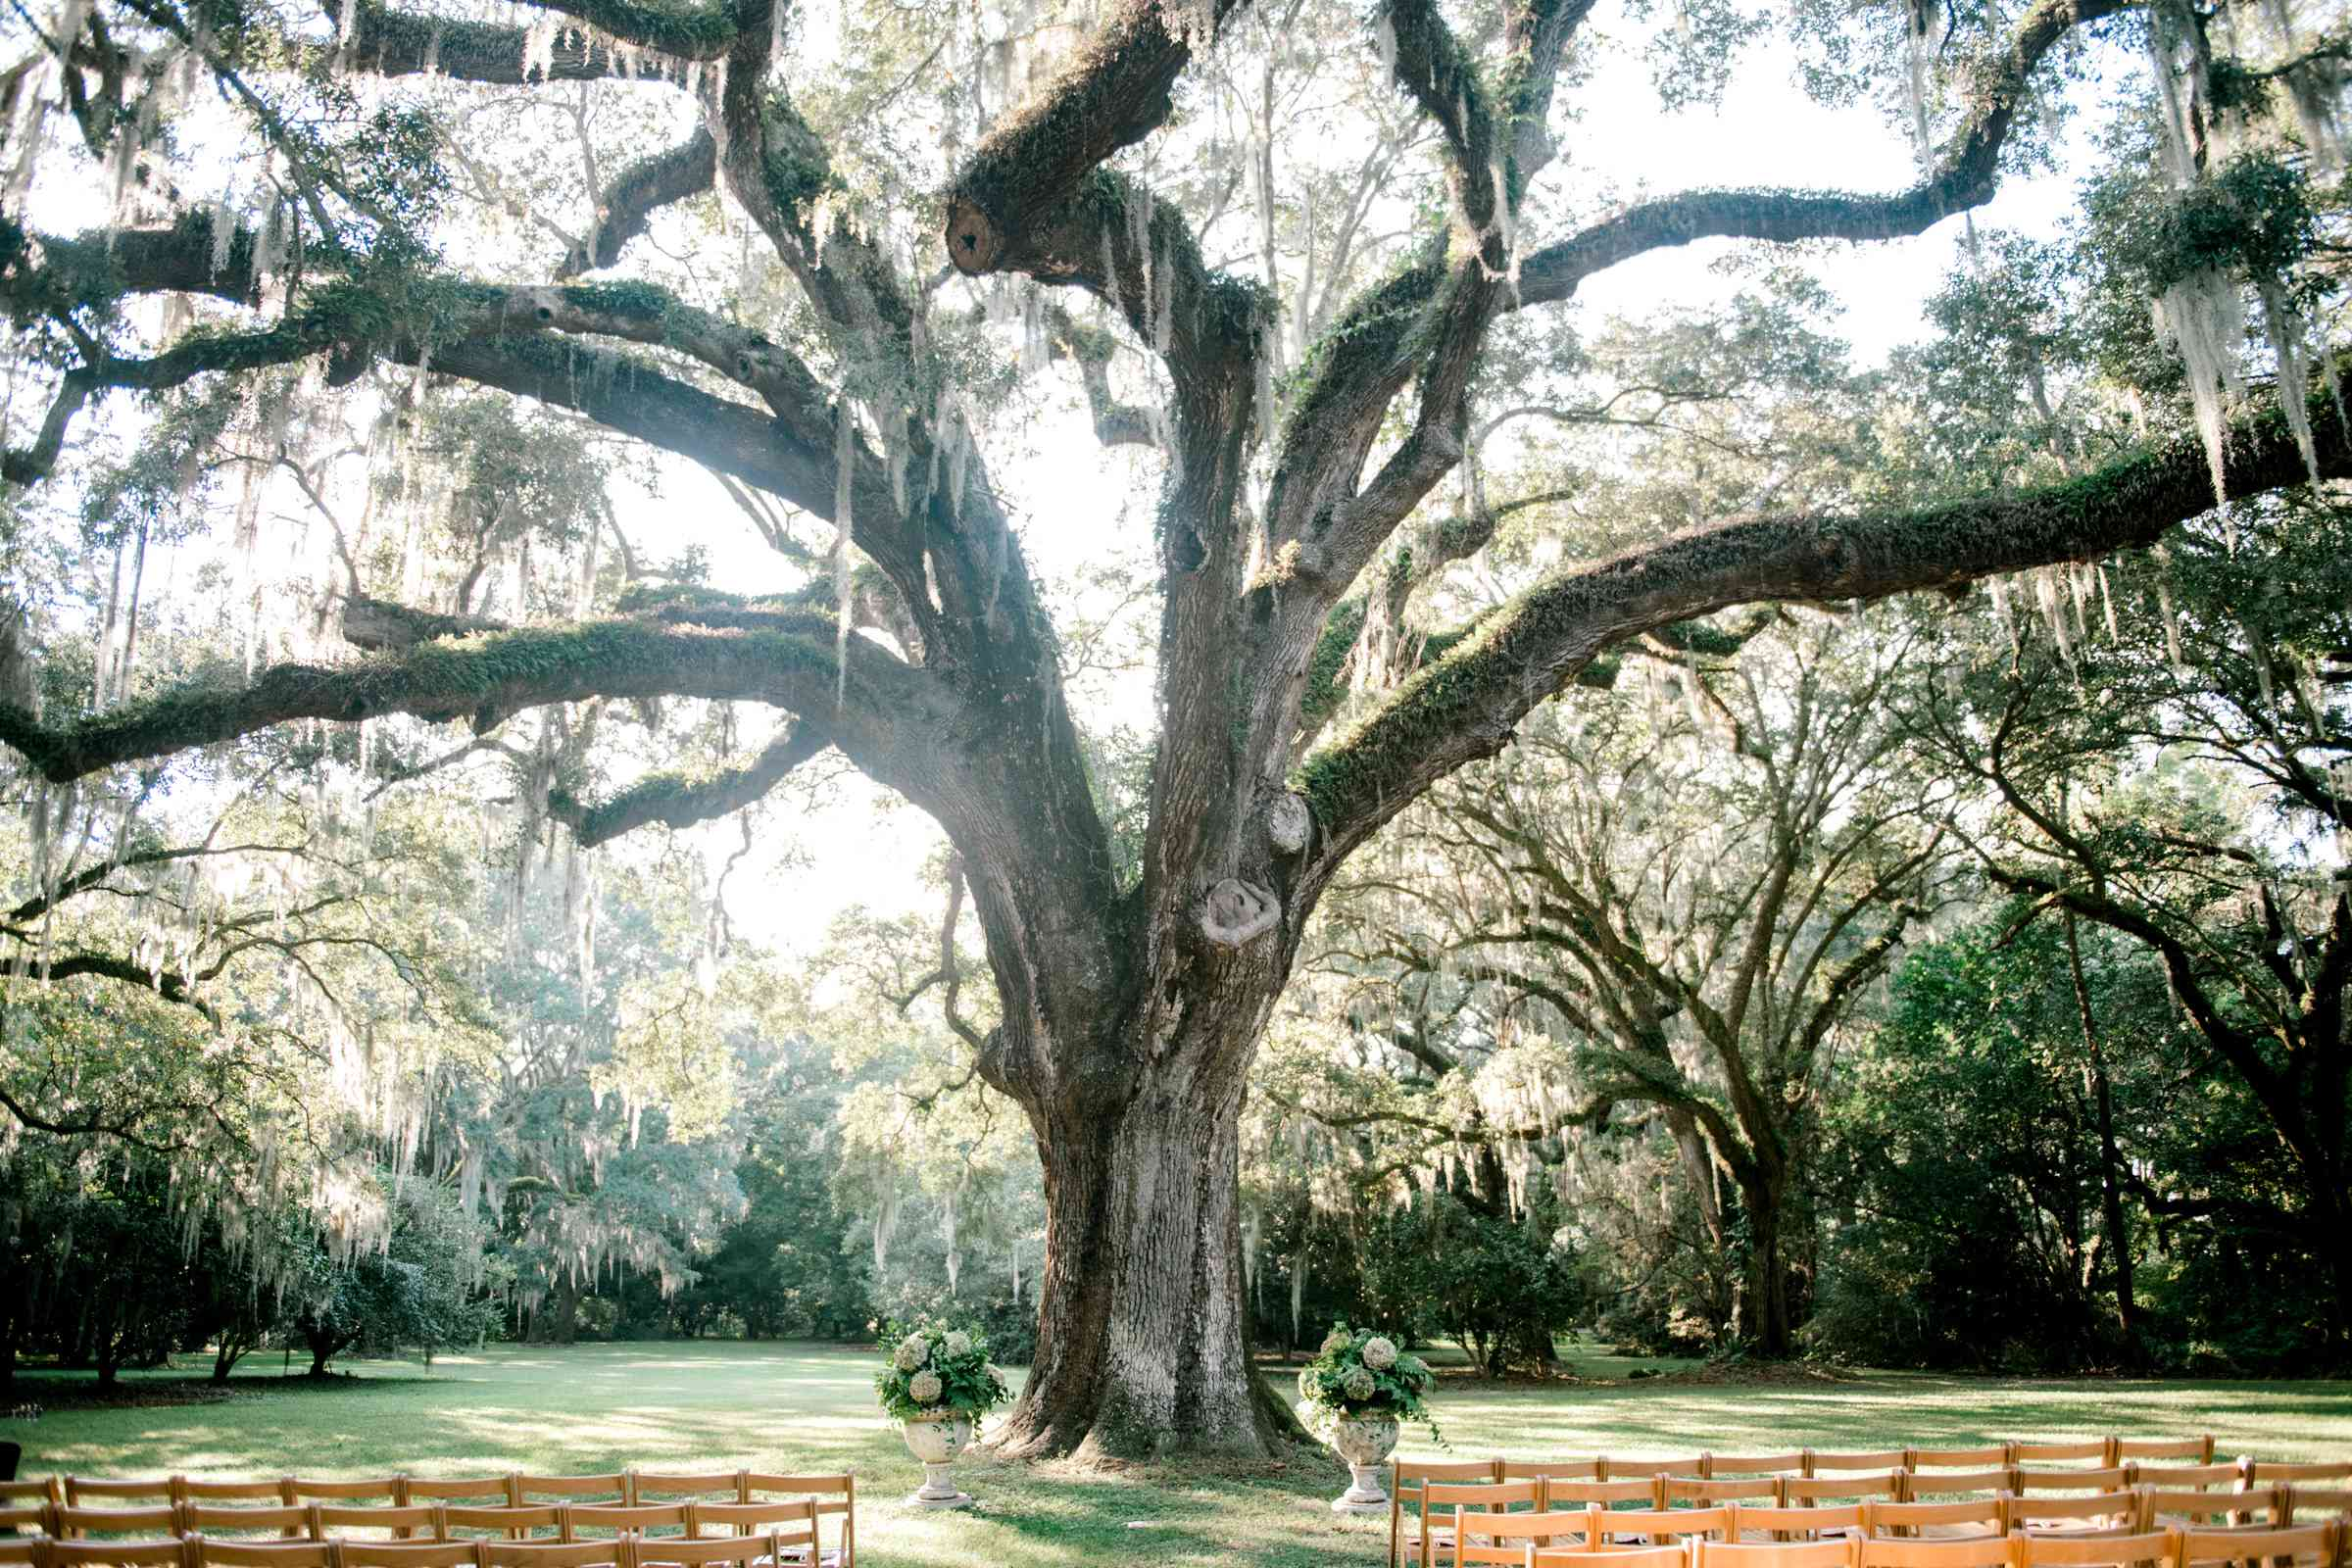 Ceremony space in front of tree